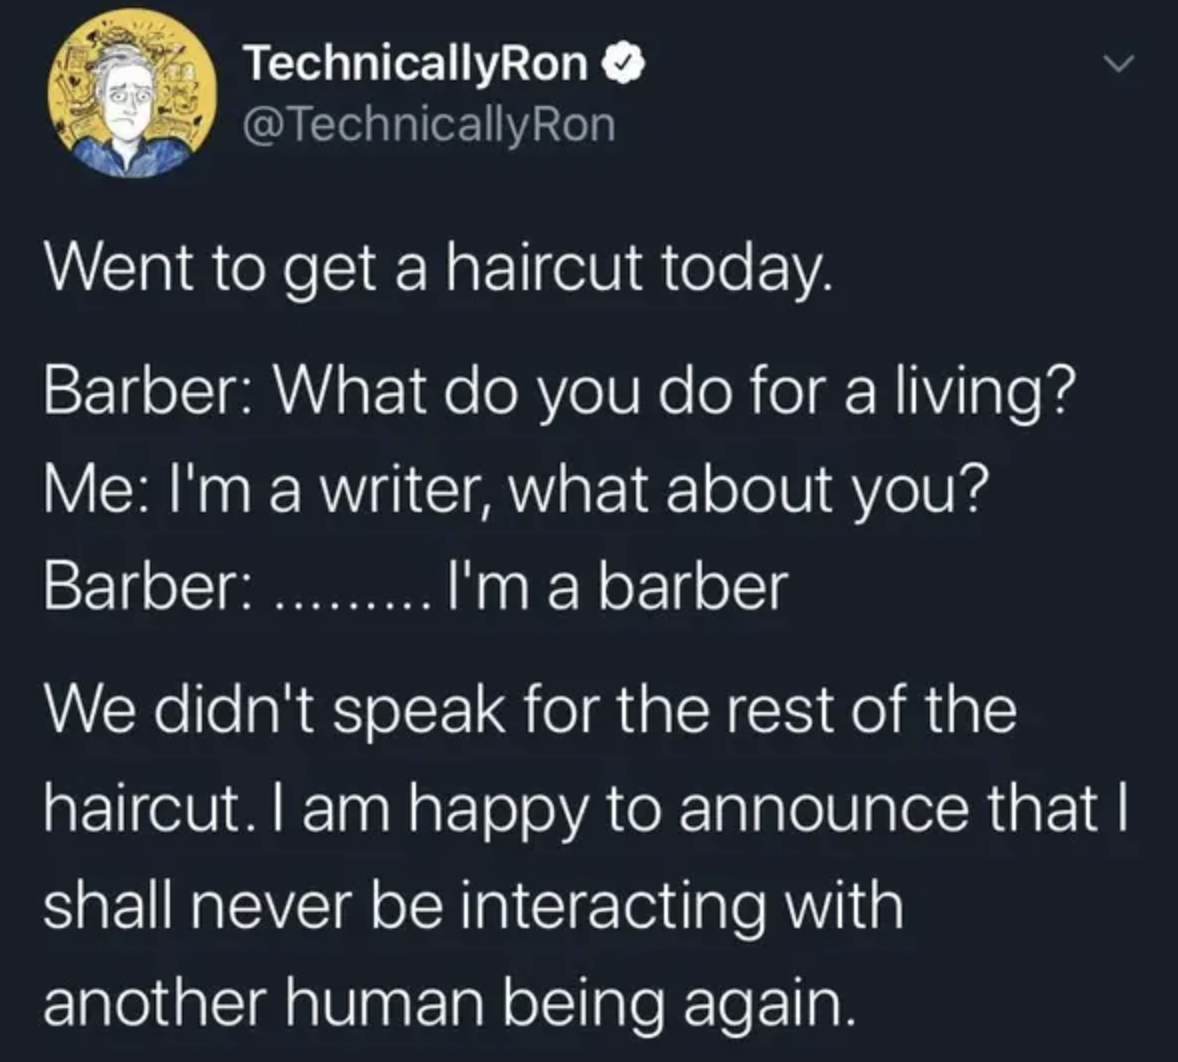 tweet reading Barber: What do you do for a living? Me: I'm a writer, what about you? Barber:  I'm a barber We didn't speak for the rest of the haircut. I am happy to announce that I shall never be interacting with another human being again.